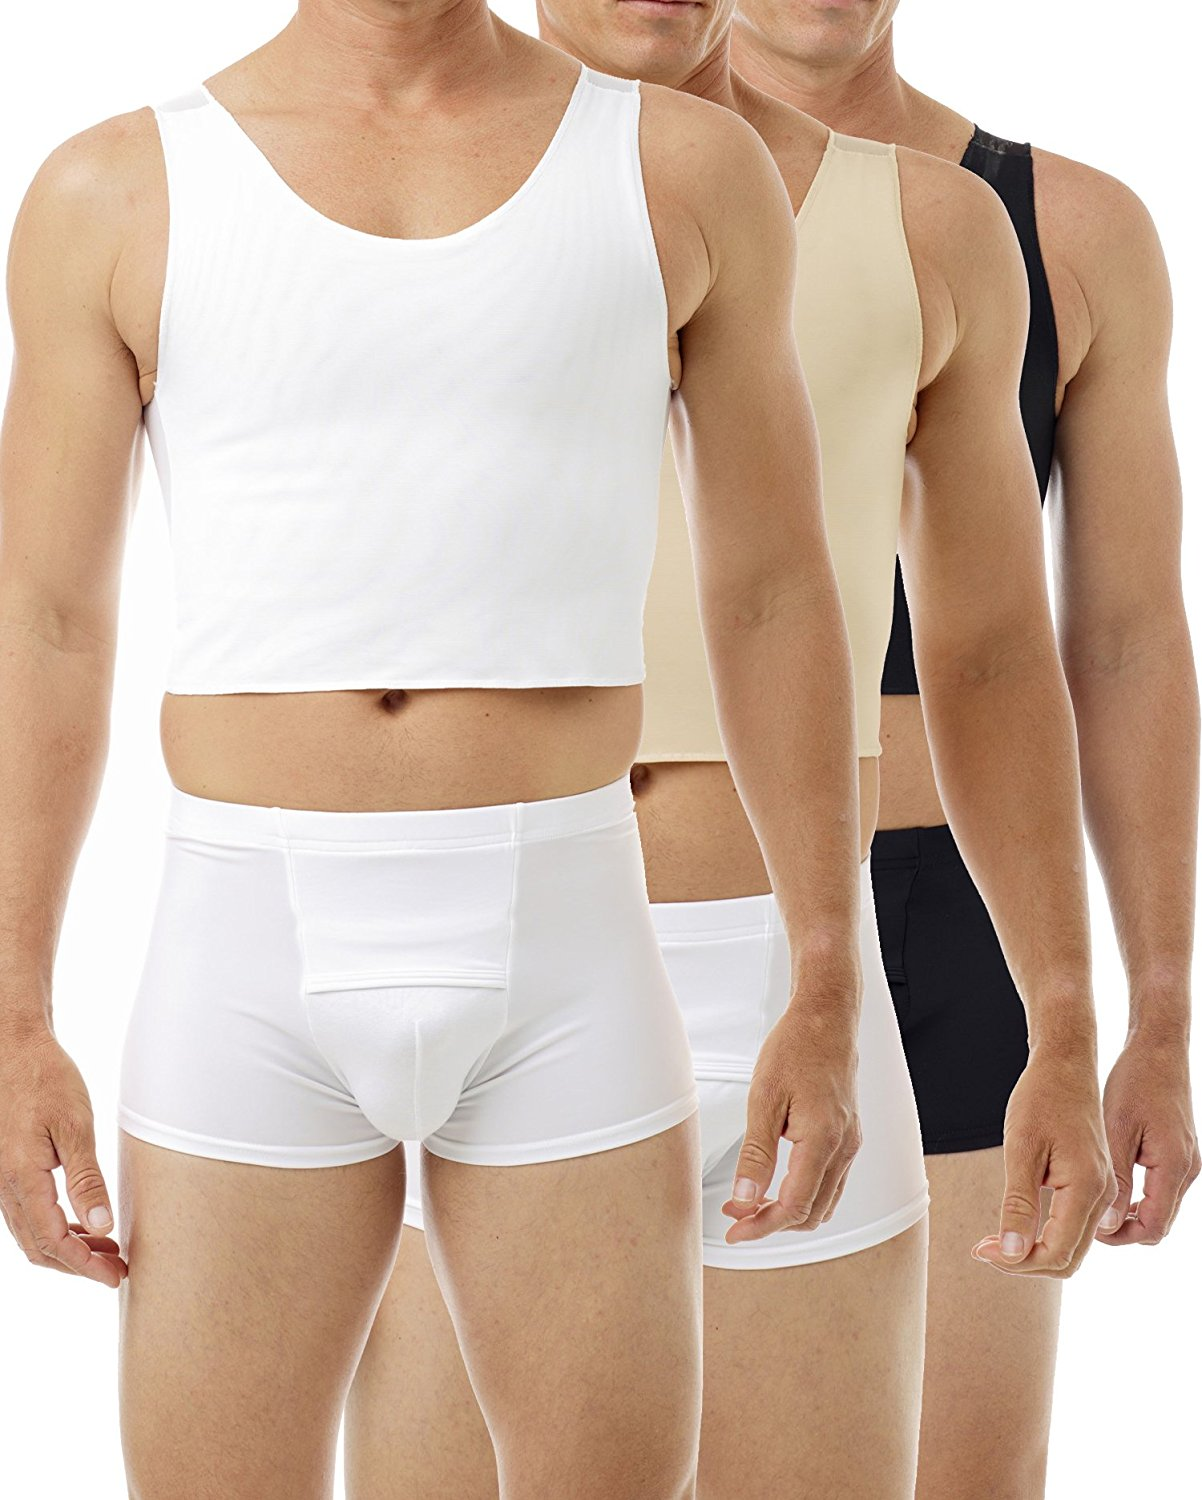 Buy Underworks FTM Extreme Tri-Top Chest Binder Top 983 in Cheap